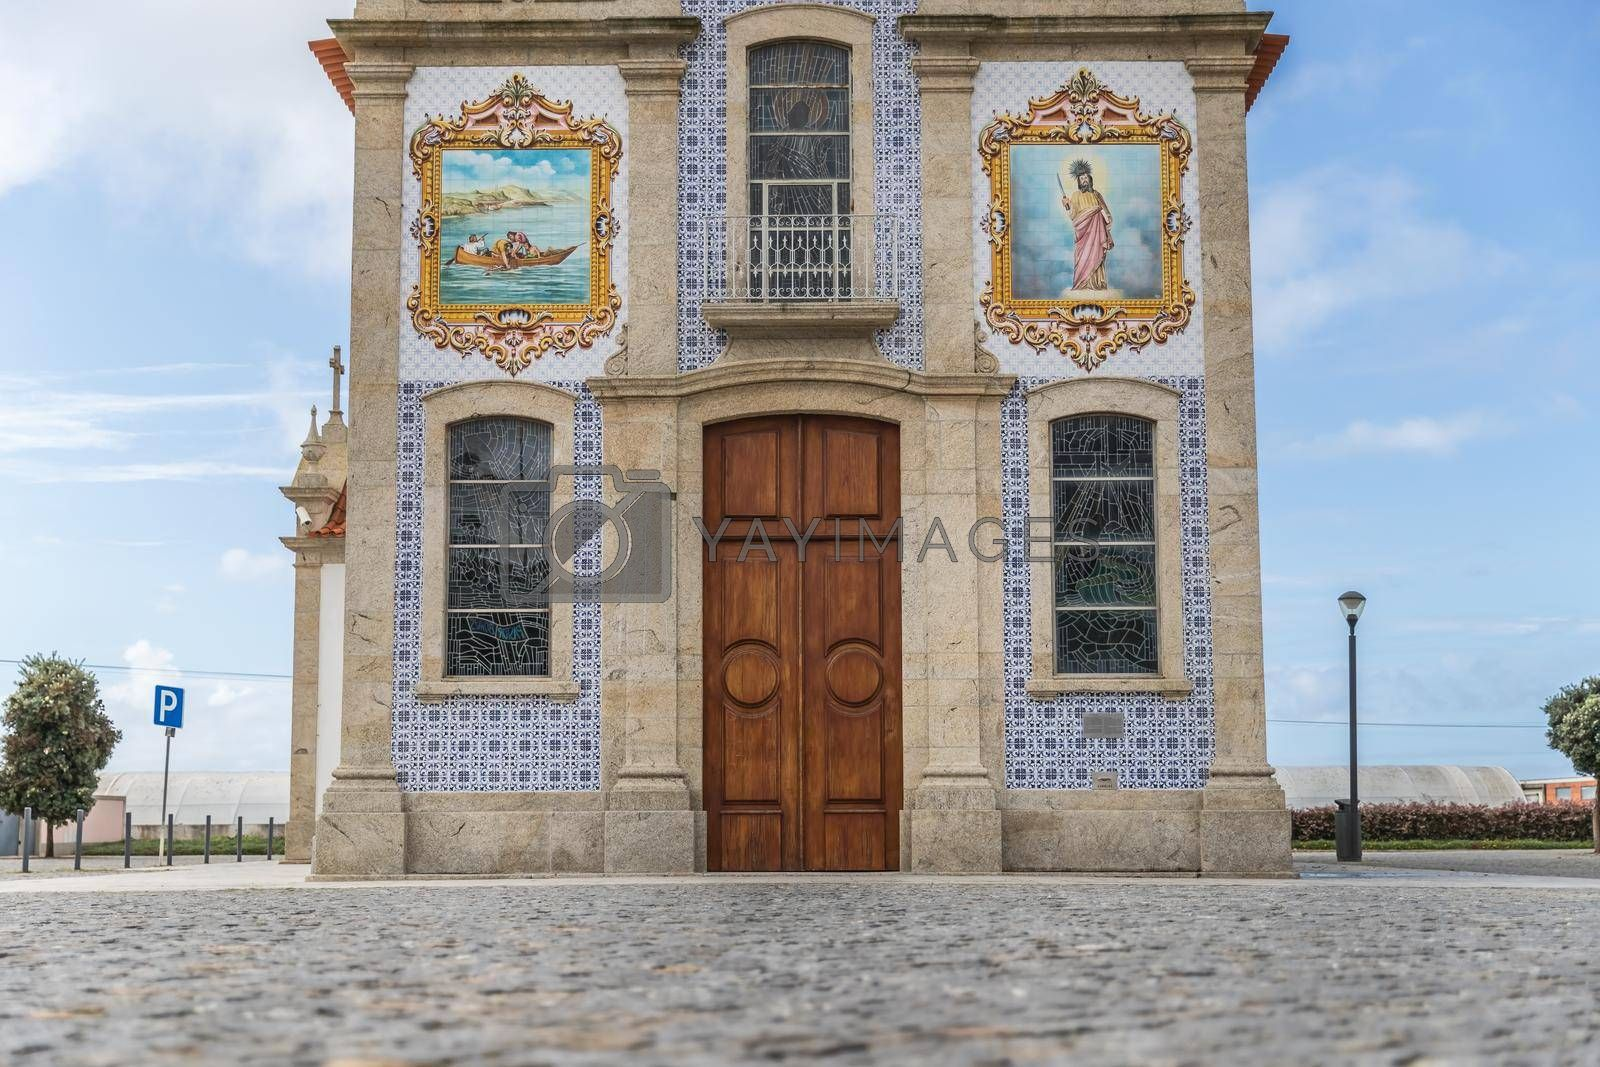 Mar, Esposende near Braga, Portugal - October 21, 2020: architectural detail of the church of S. Bartolomeu de Mar in a small village in northern Portugal on an autumn day